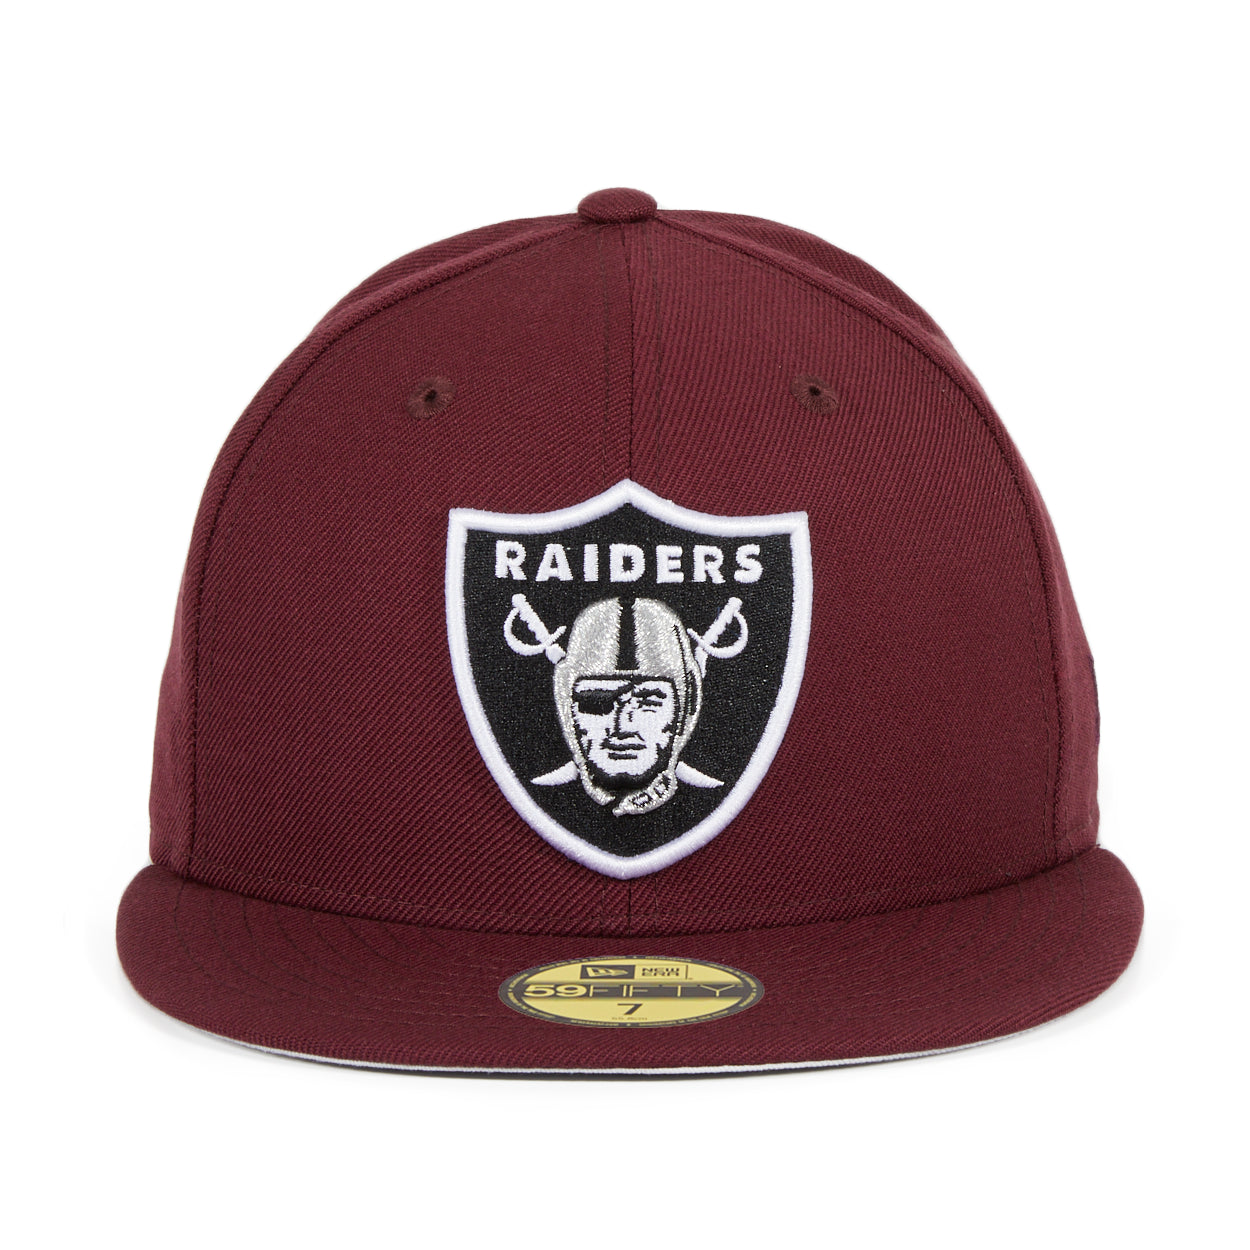 Hat Club Exclusive New Era 59Fifty Oakland Raiders Fitted Hat - Maroon